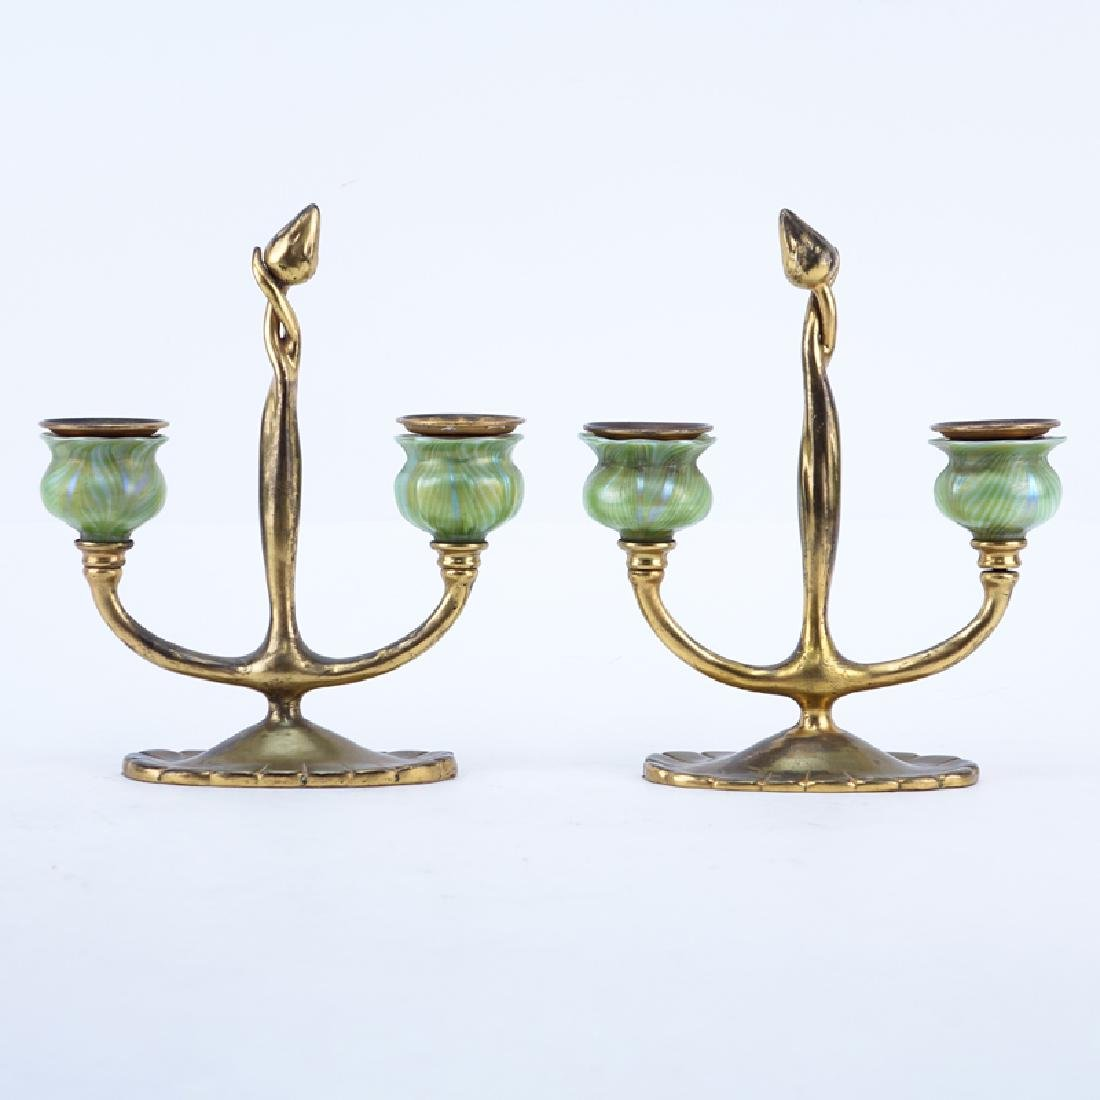 Pair of Tiffany Studios New York, Gilt-Bronze Two Light